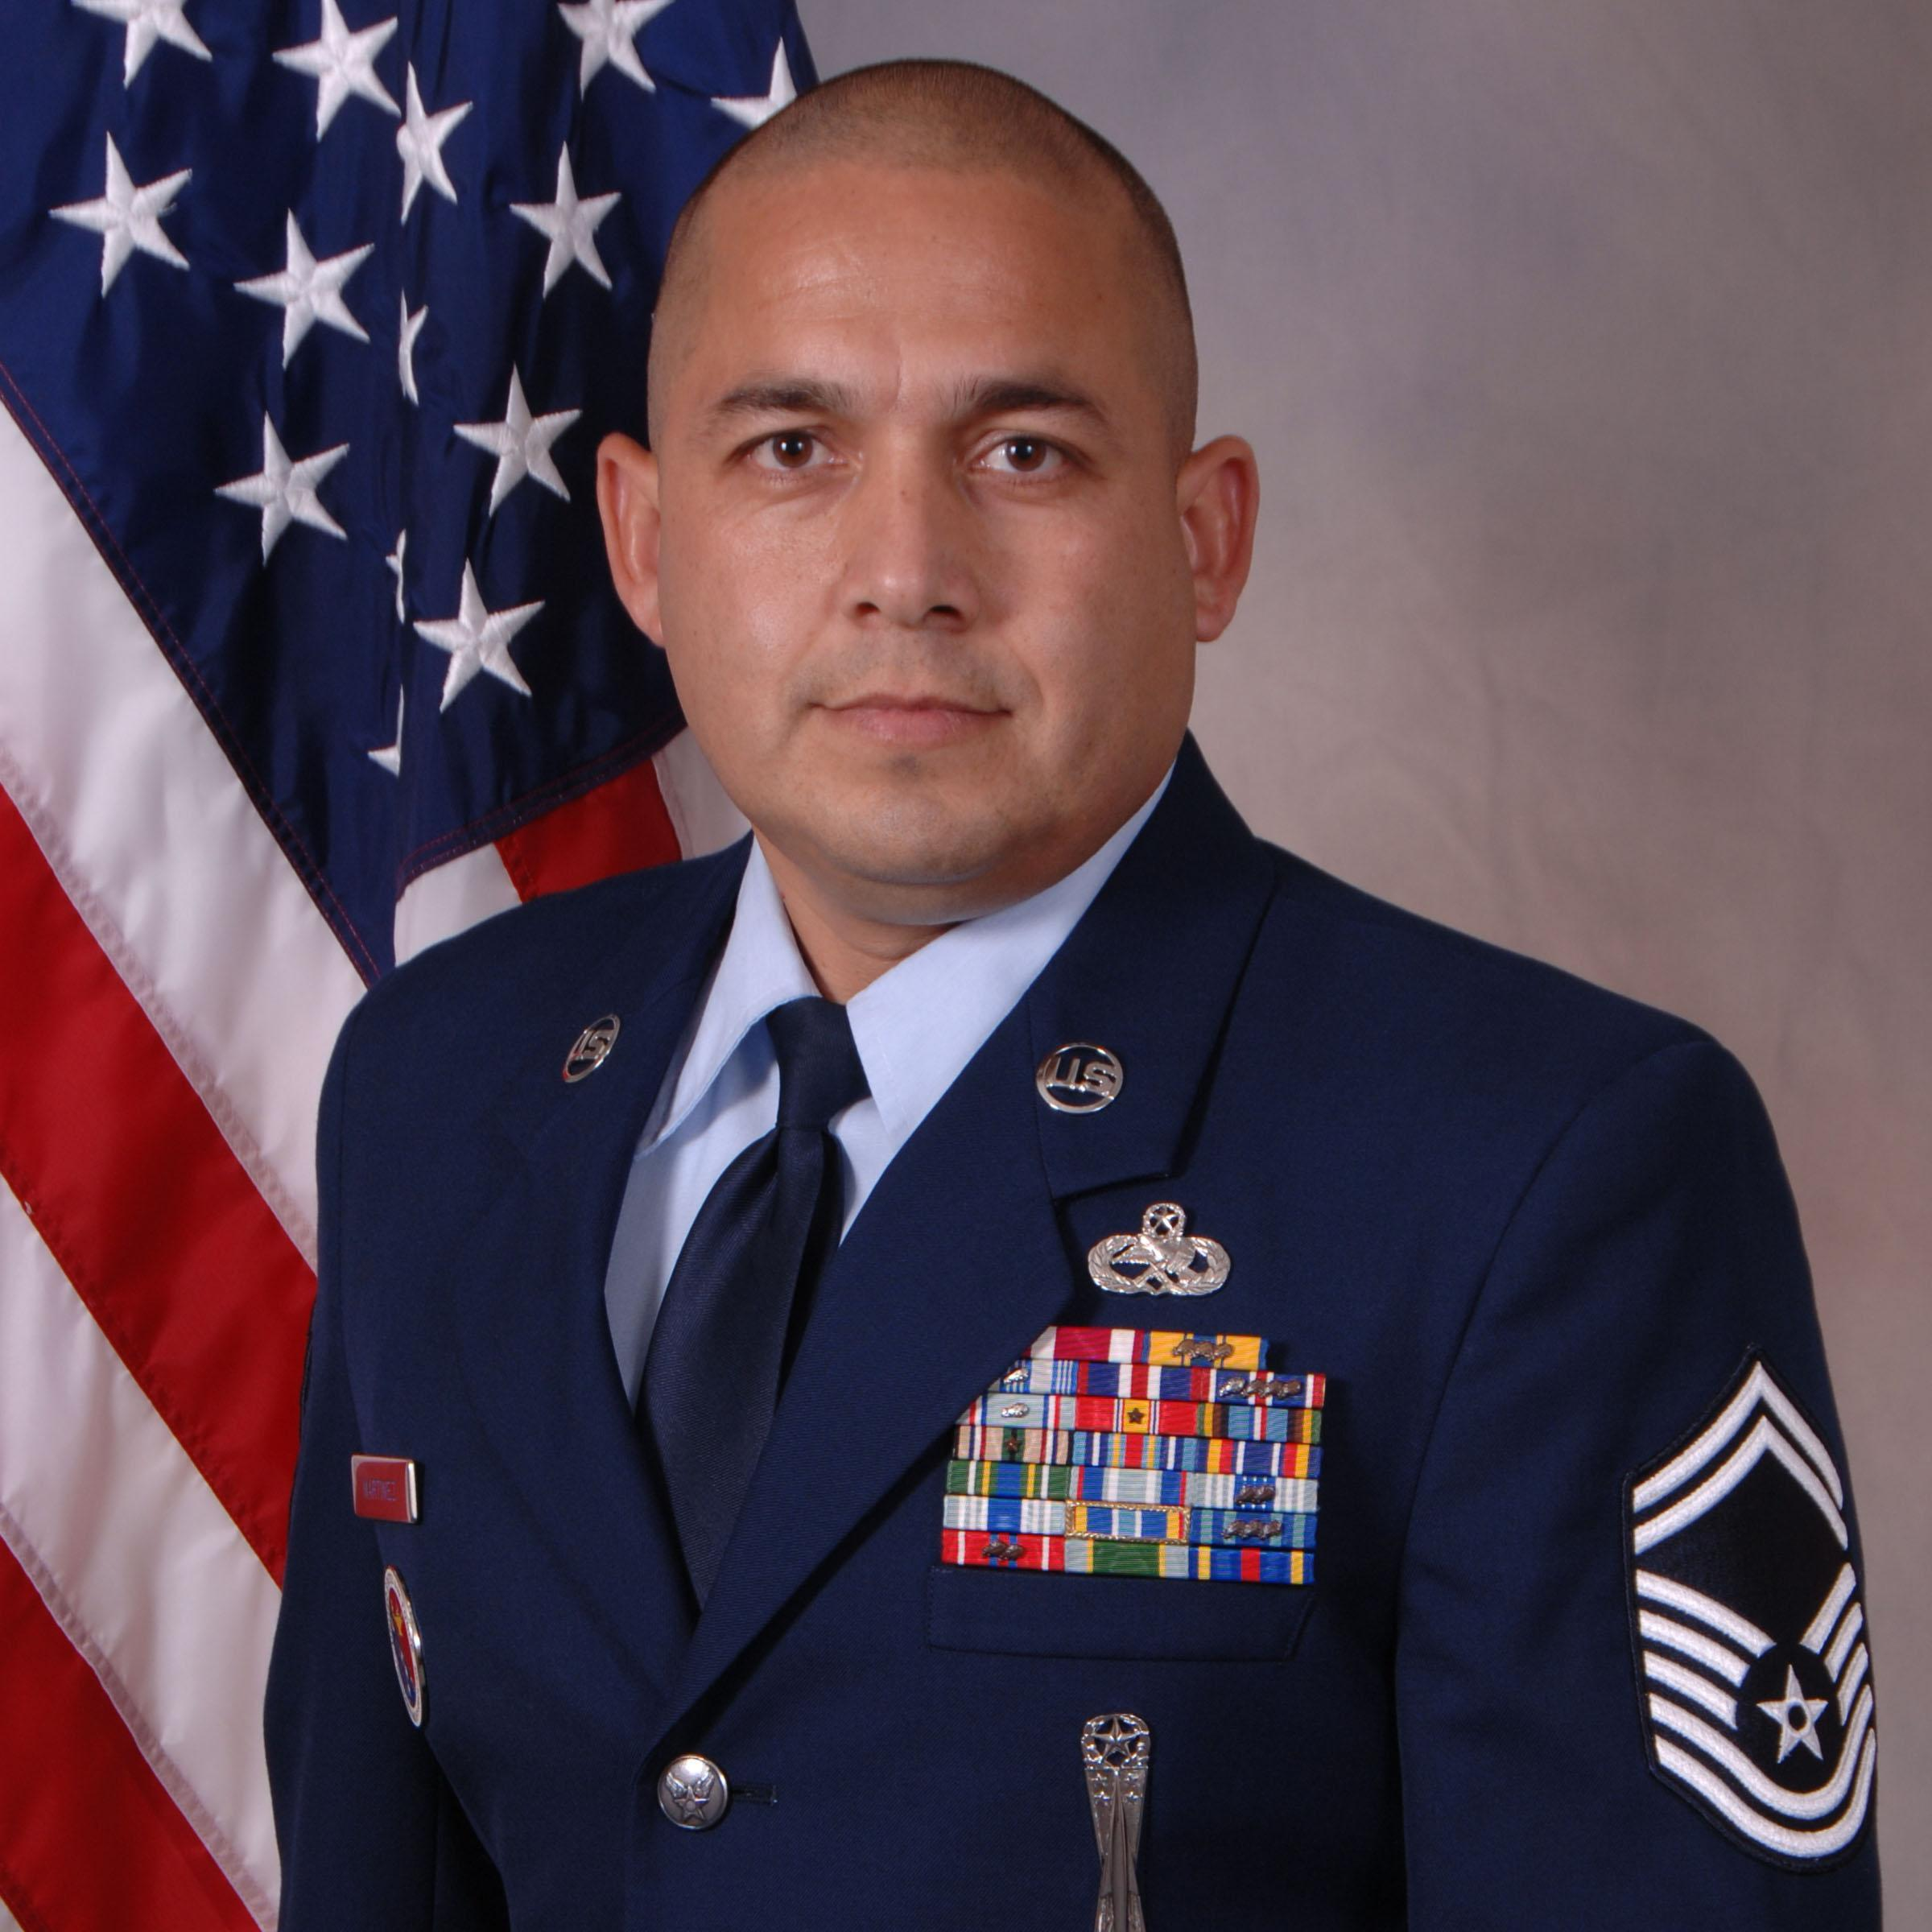 Esteban Martinez, SMSgt, USAF (Ret)'s Profile Photo